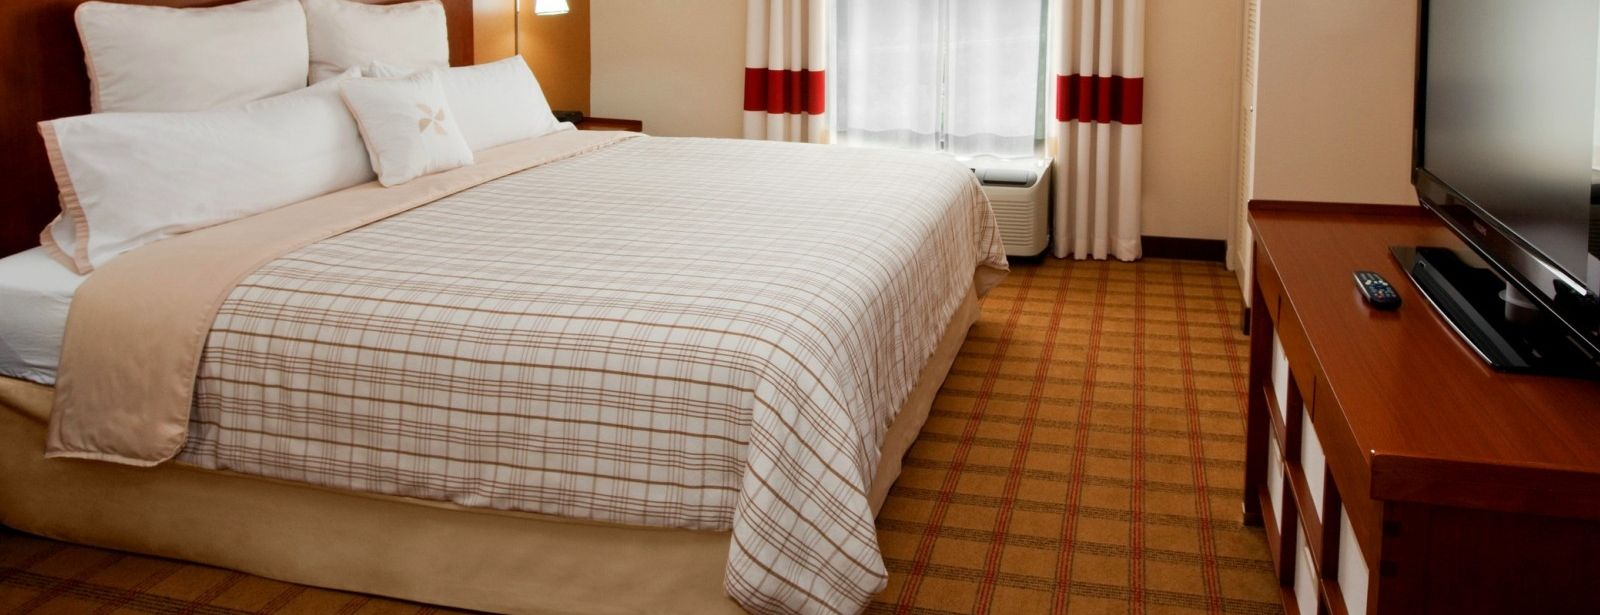 Charlotte Accommodations - King Guest Room